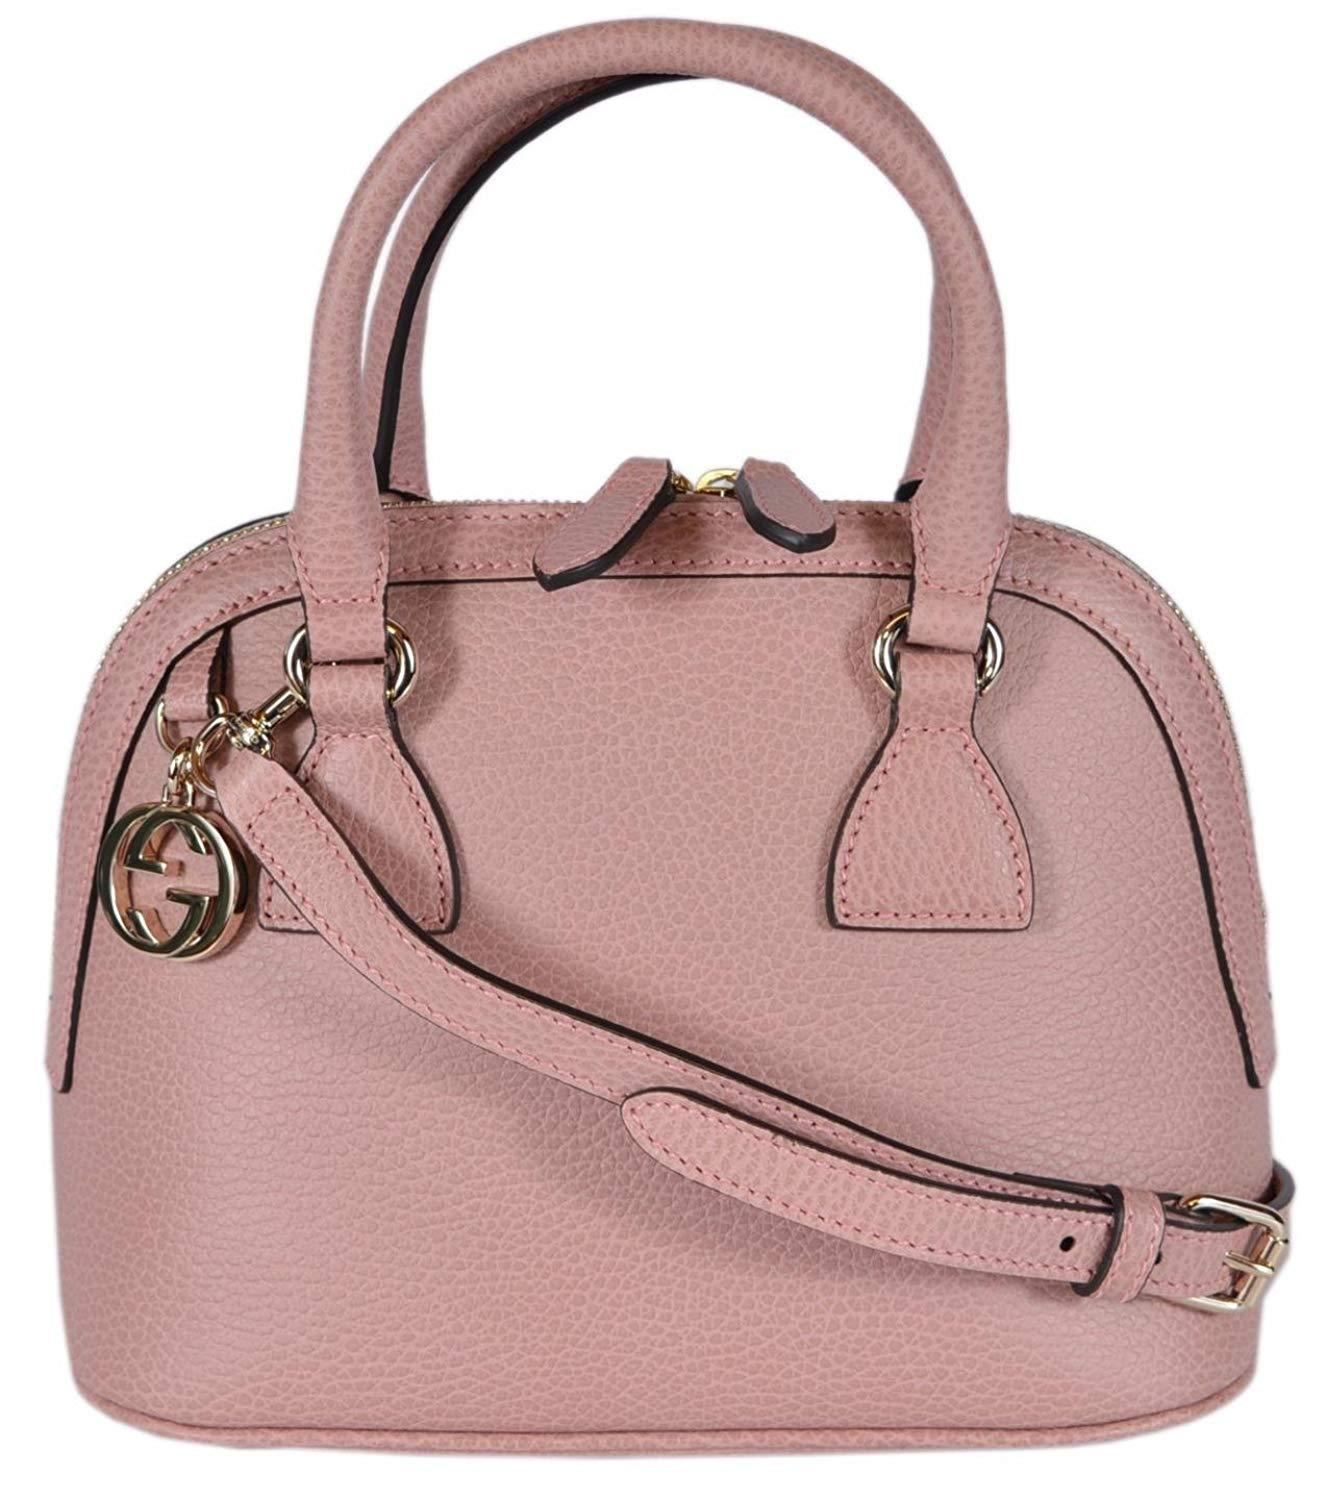 874885d1fec Gucci Women s Leather 2-Way Convertible GG Charm Small Dome Purse (Soft  Pink)